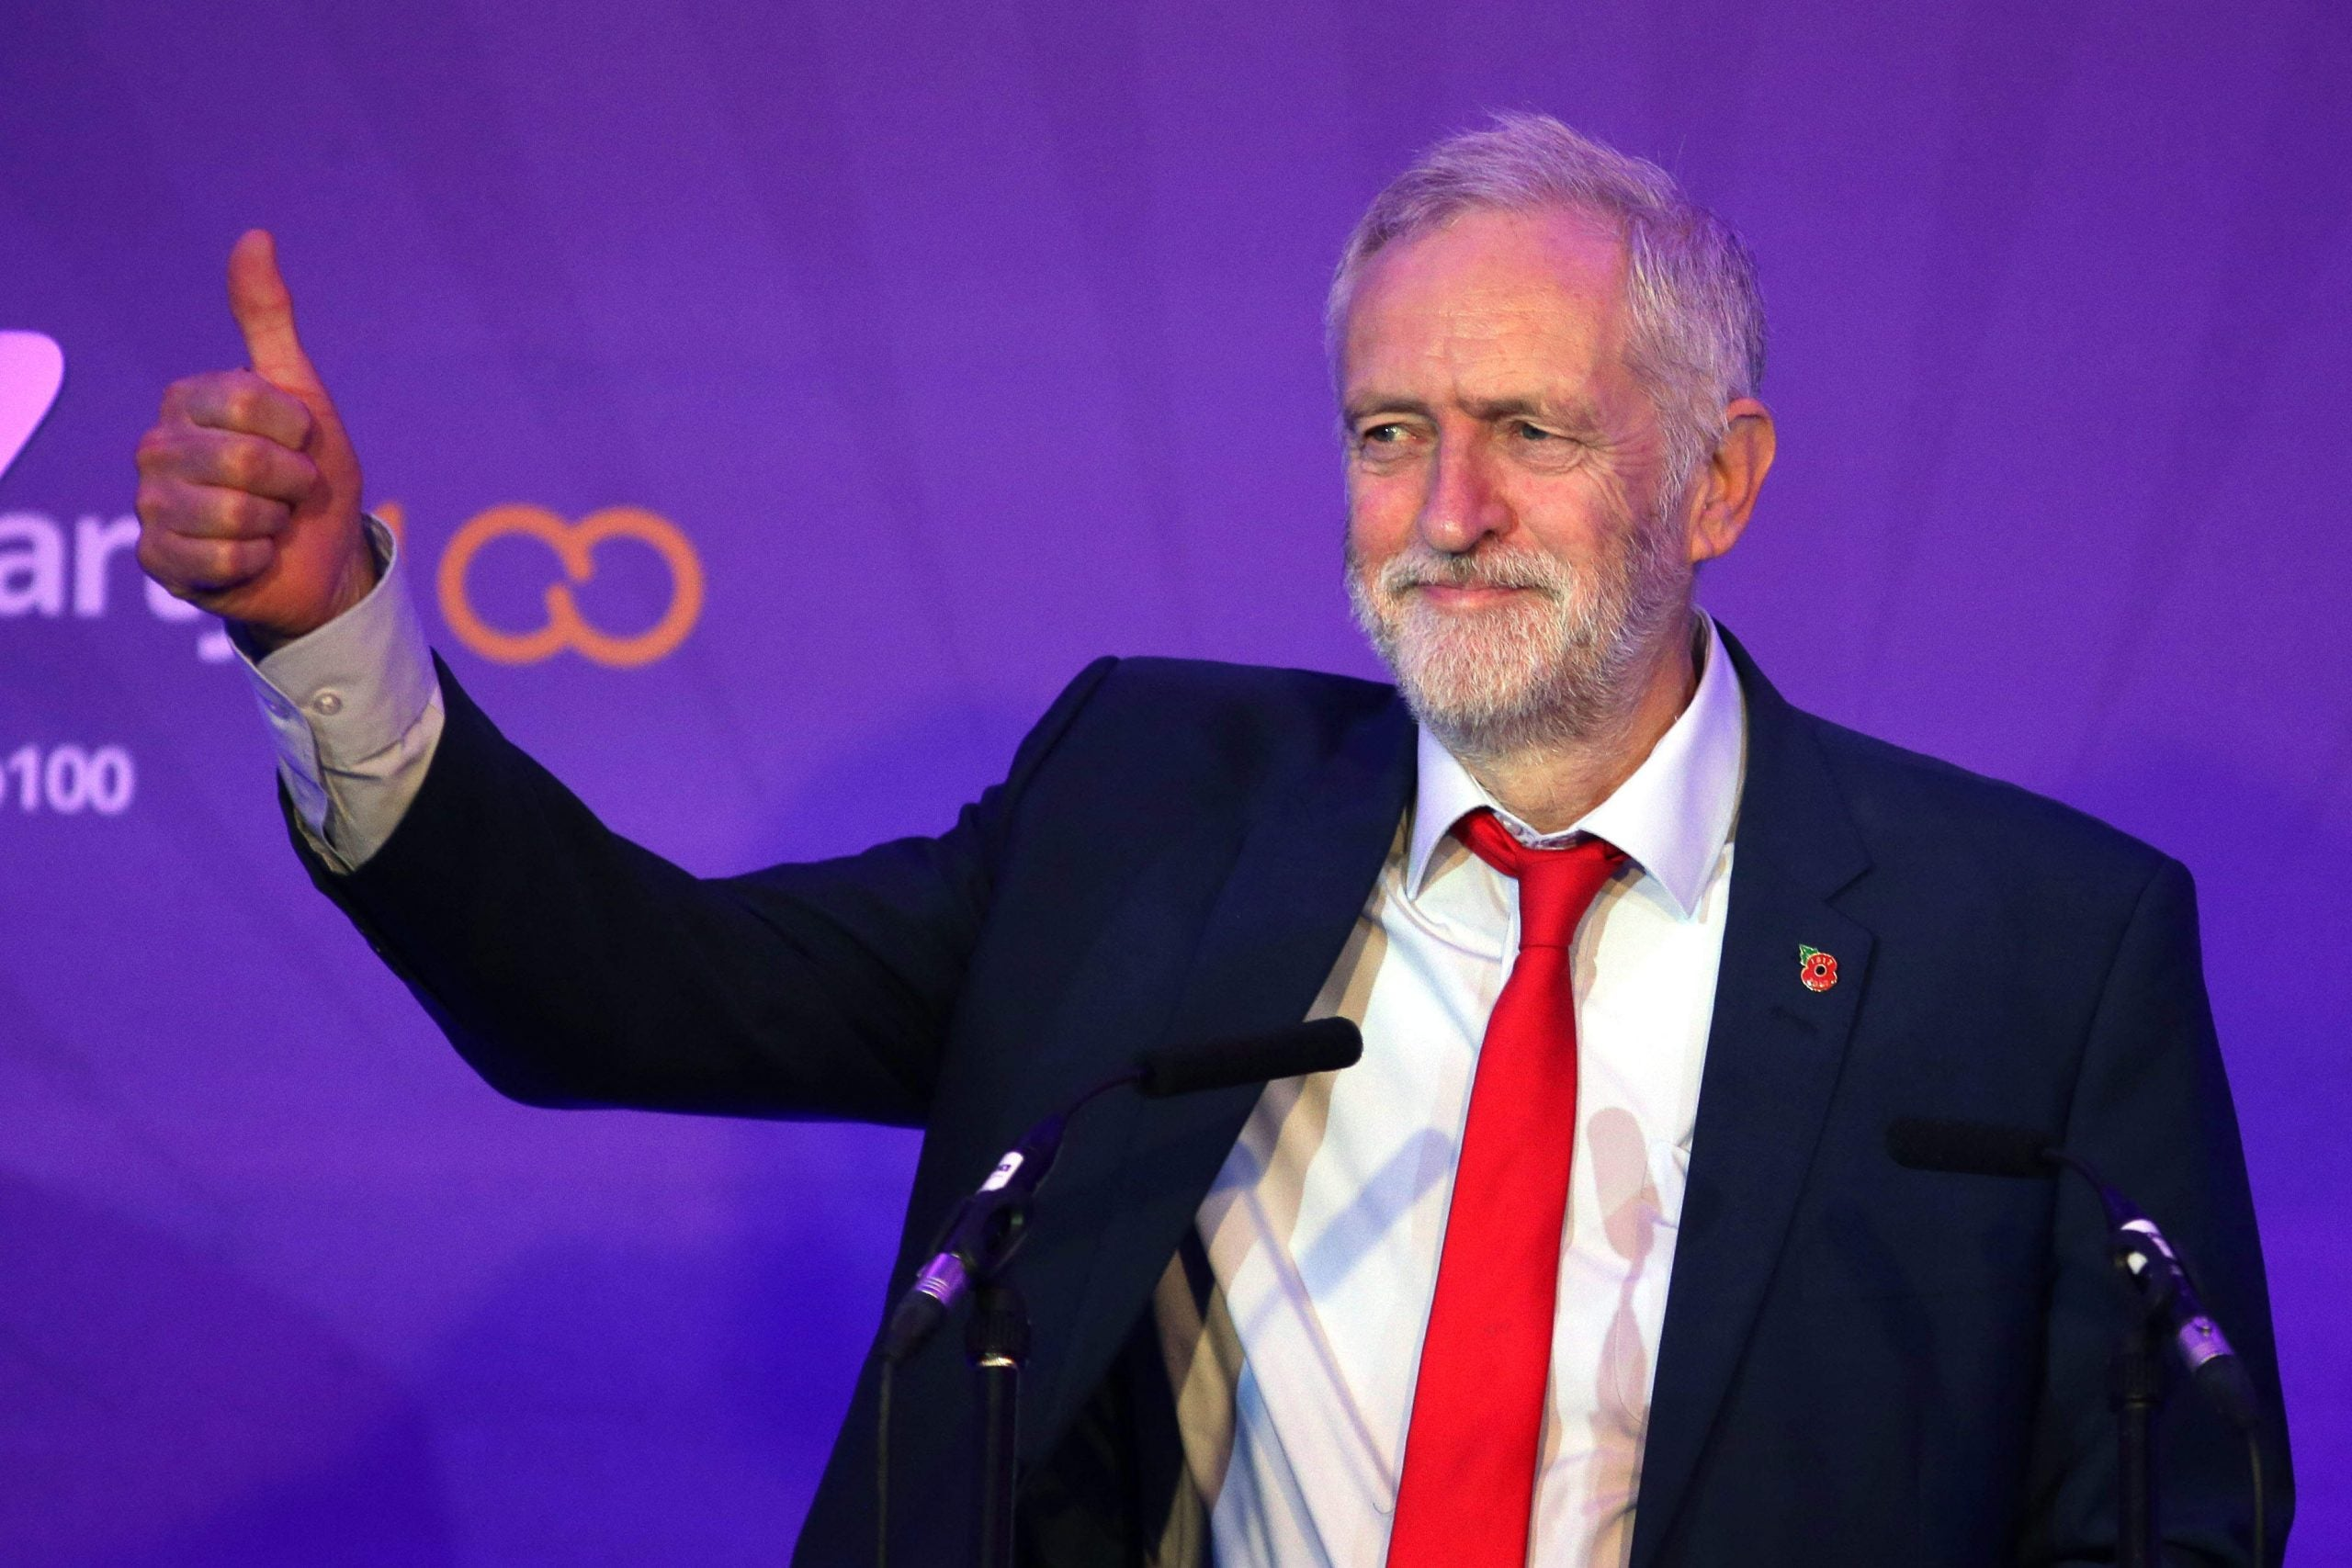 Labour's Big Four are divided over Europe – but agree on the one issue that matters to them